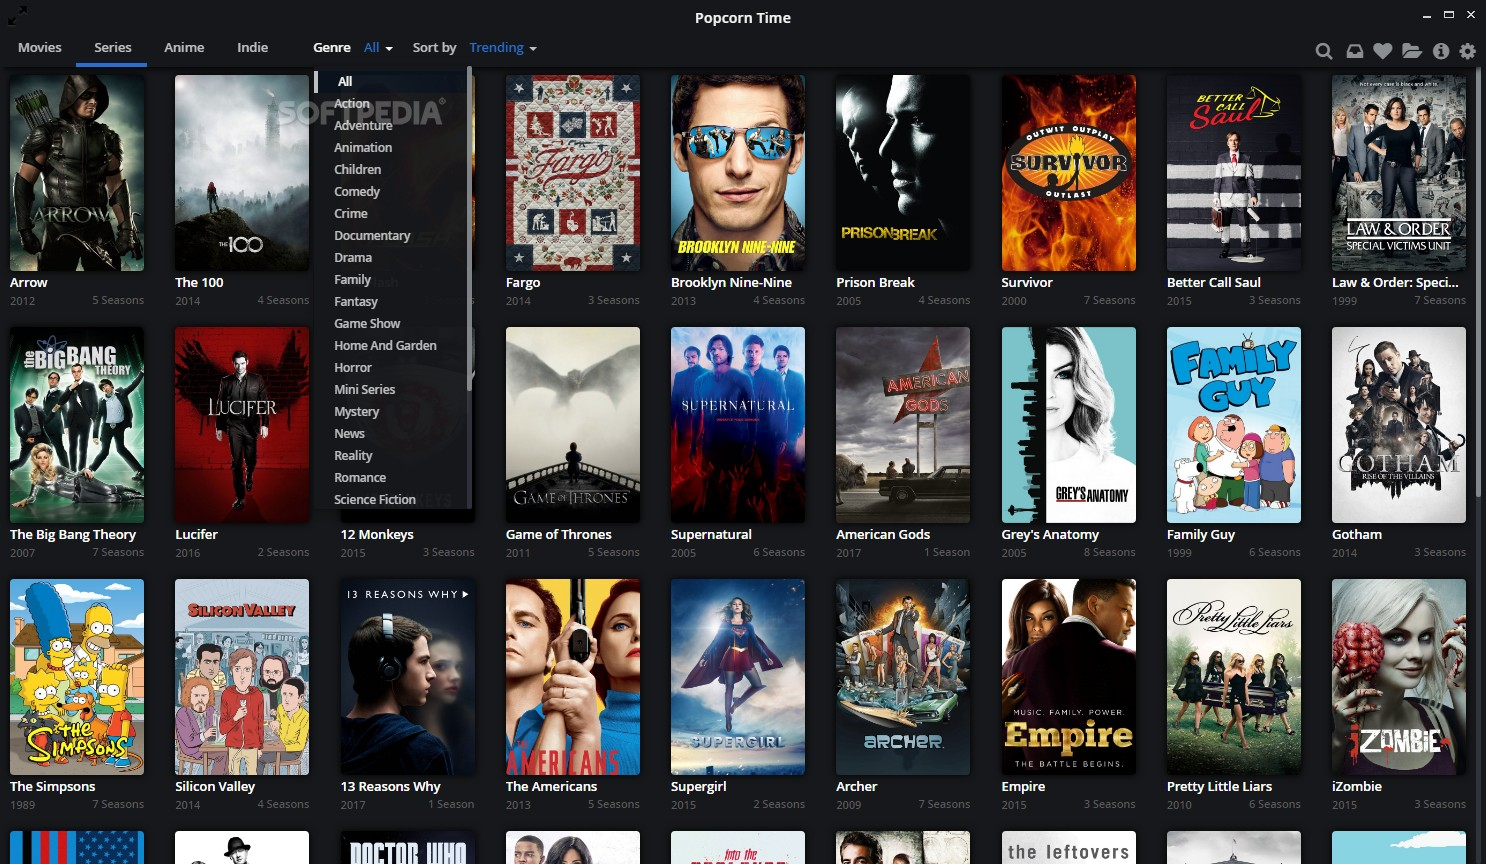 Popcorn Time Windows 10